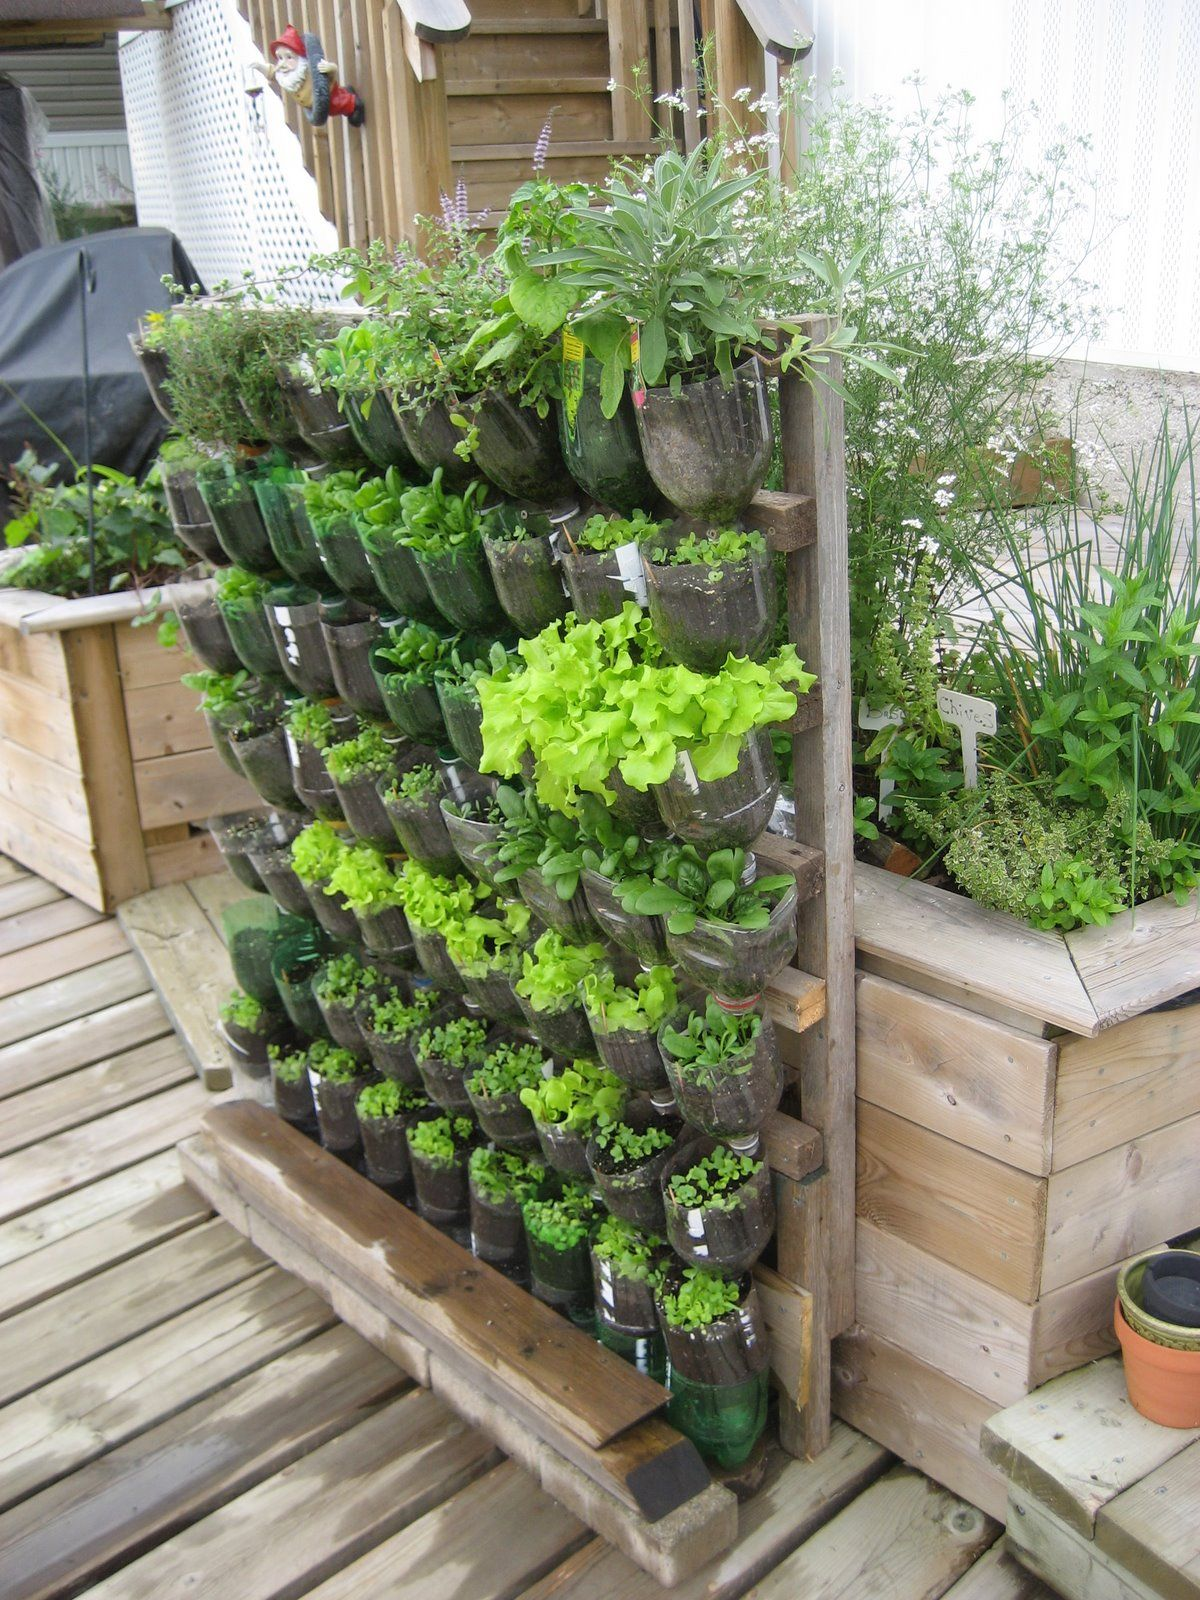 The Aim to build a low cost vertical garden using as much